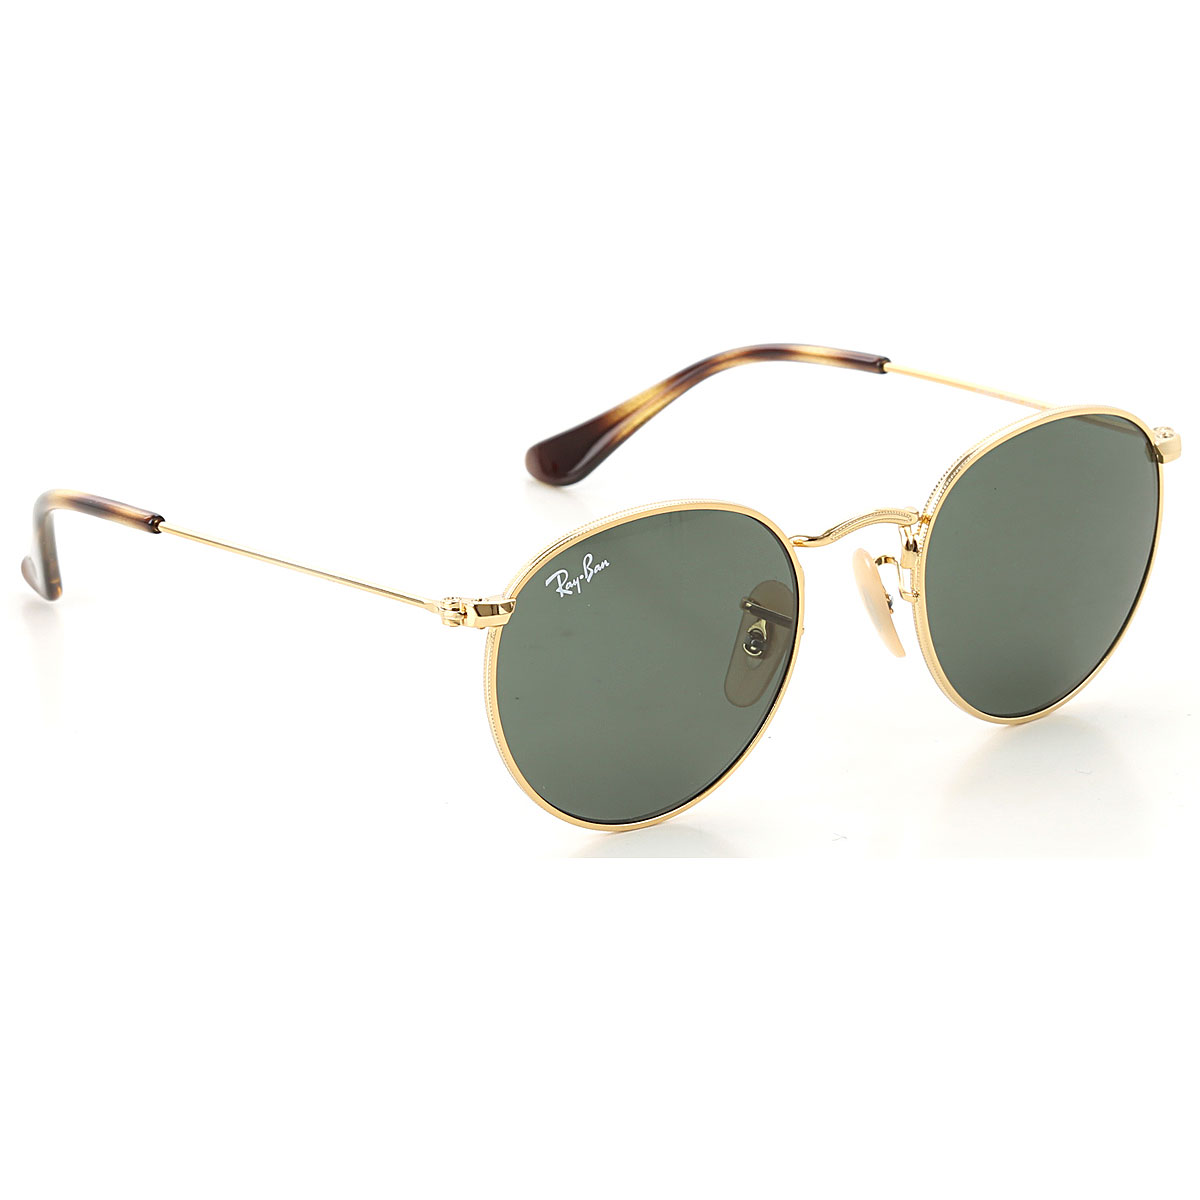 Image of Ray Ban Junior Kids Sunglasses for Boys On Sale, Gold, 2017